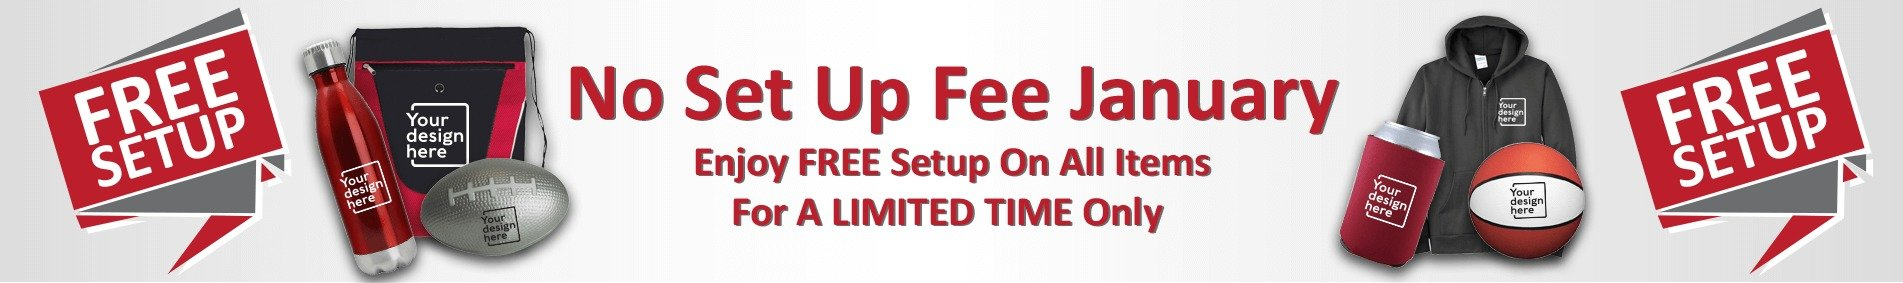 Free Set Up January Banner